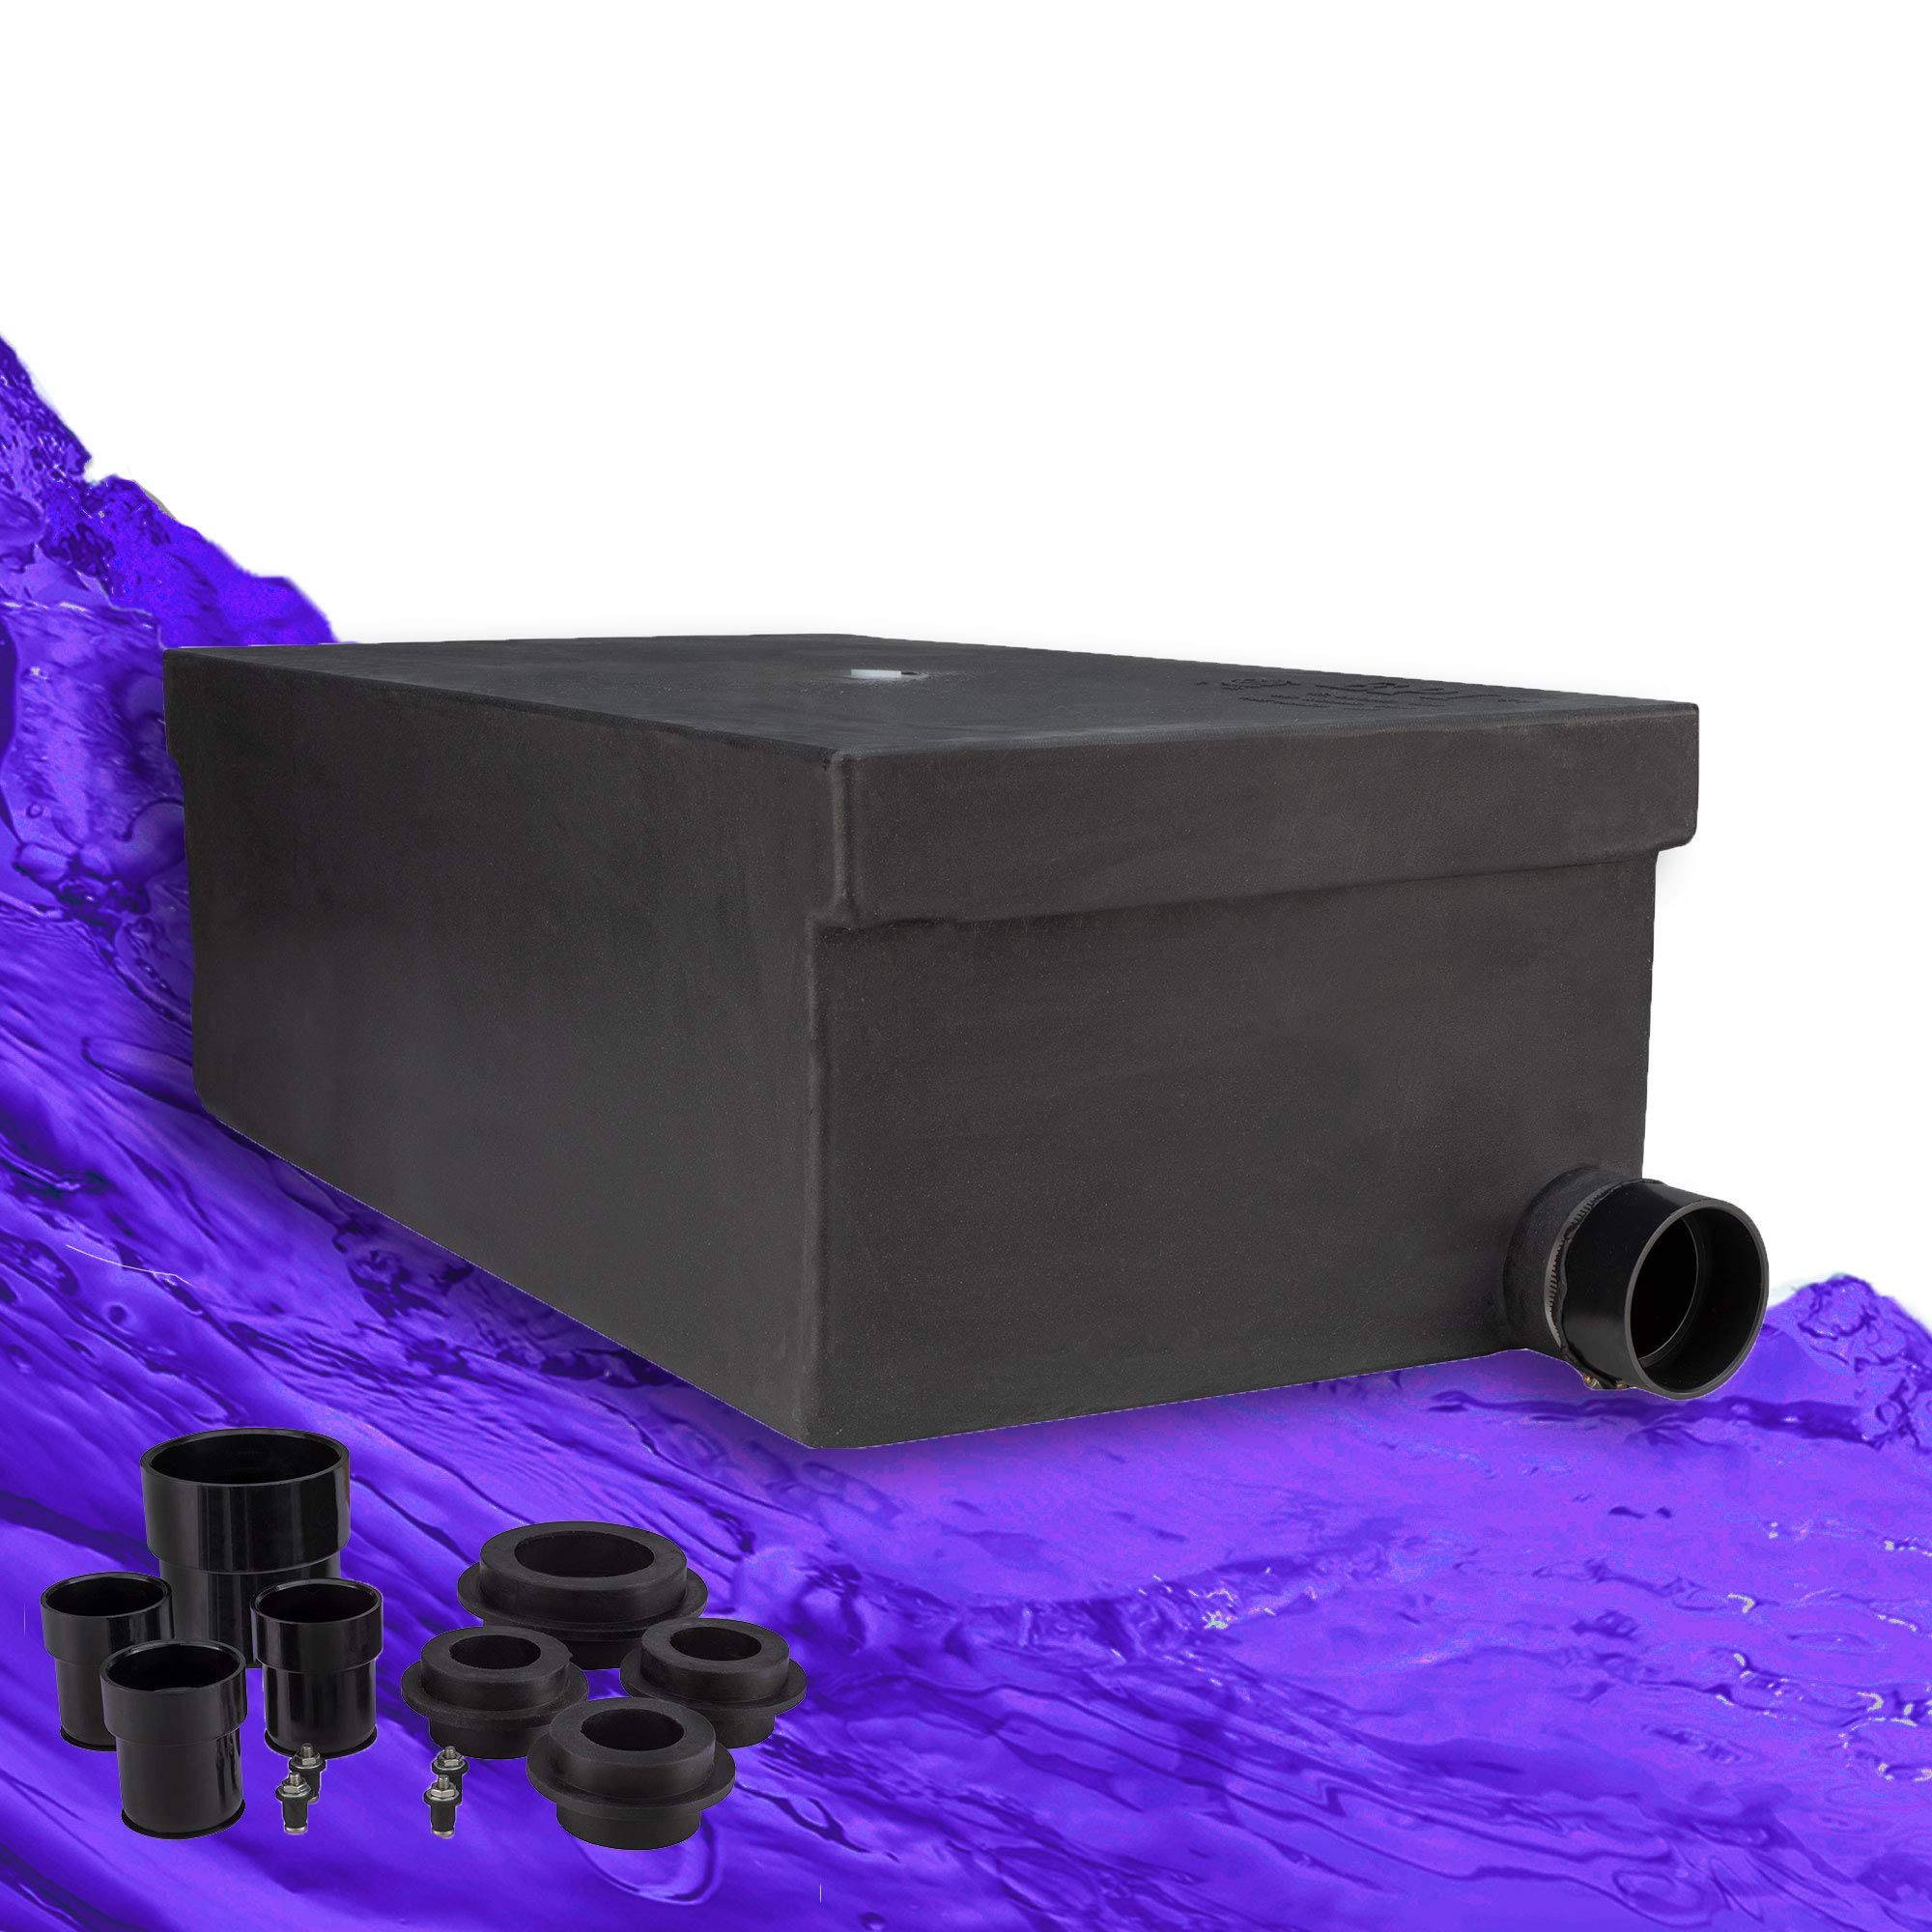 RecPro 31 Gallon RV Holding Tank 34'' x 19 1/2'' x 13'' | Black Waste Water | 4848 | Includes Universal Installation Fittings Kit by RecPro